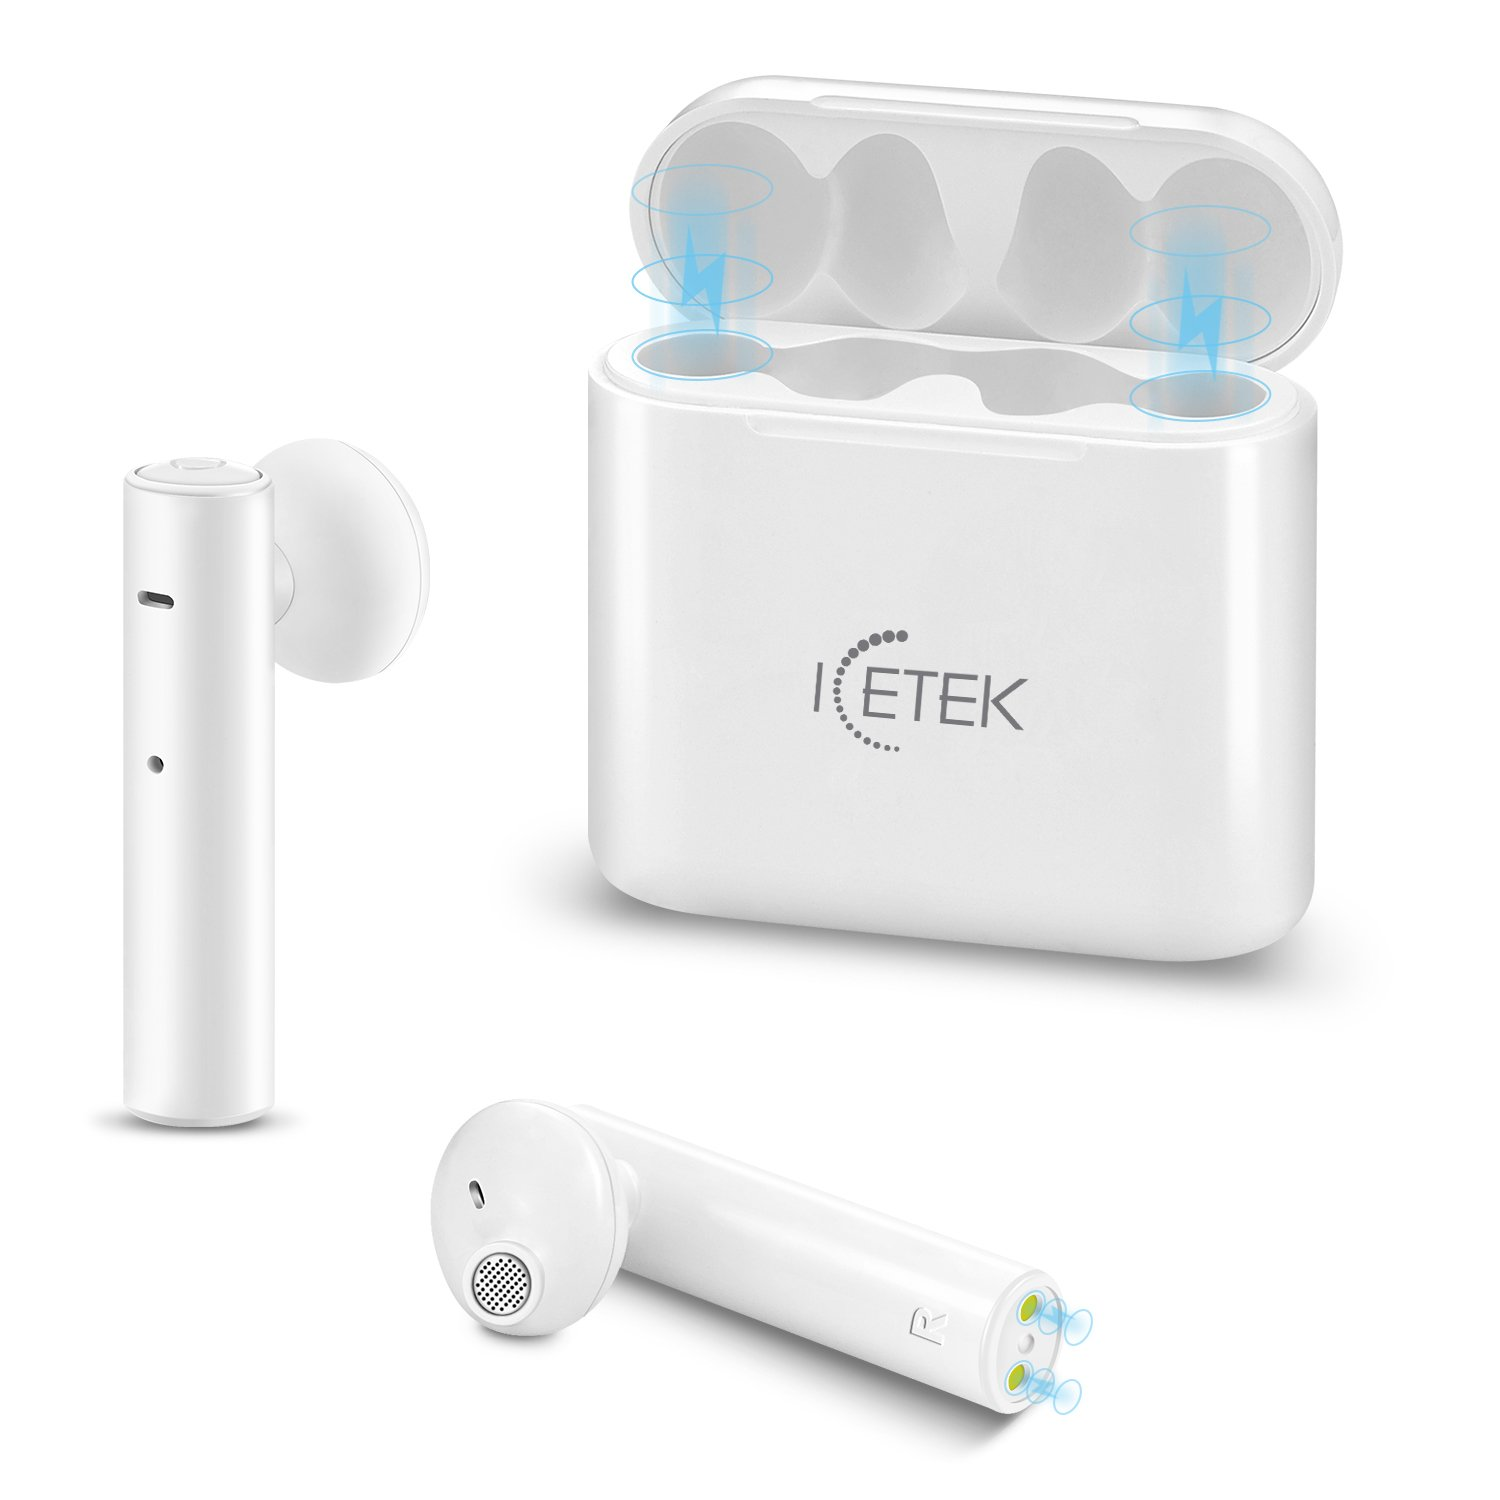 True Wireless Earbuds 2.0 ICEtek Second Generation Bluetooth in-Ear Headphones & Charging Case for iPhone iPad Android Phones Devices White Sweat Proof for Sports (Second Generation)